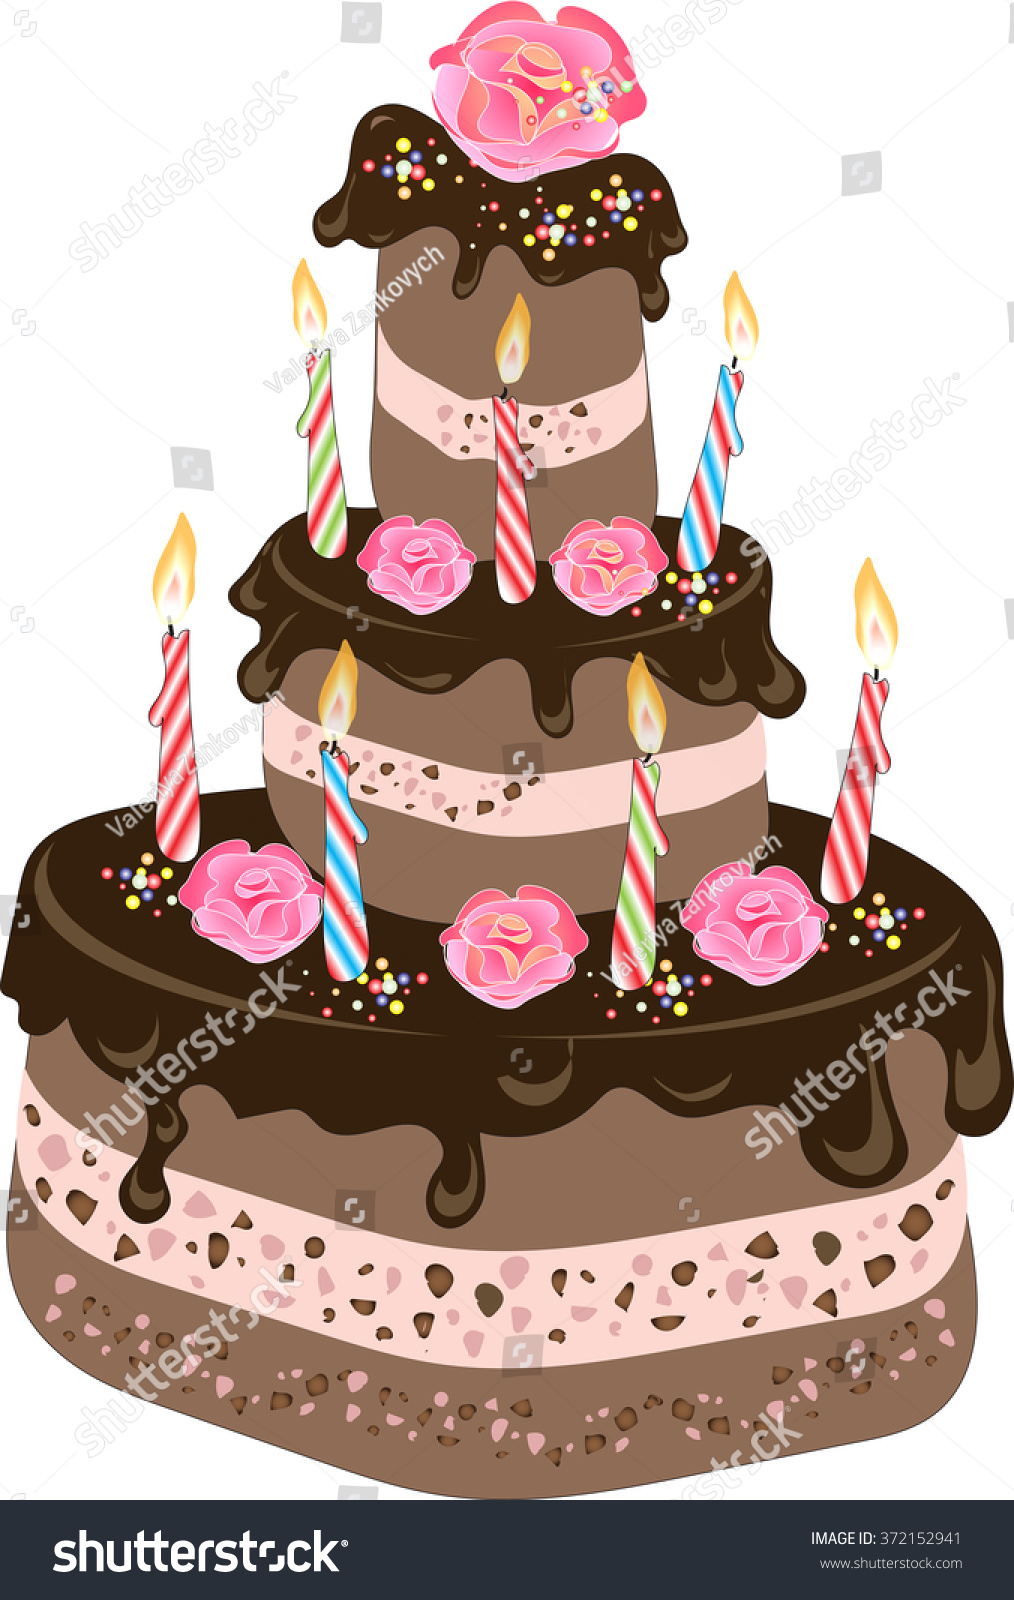 Chocolate birthday cake chocolate frosting candles stock vector chocolate birthday cake with chocolate frosting candles cream rose flowers and colorful sprinkles izmirmasajfo